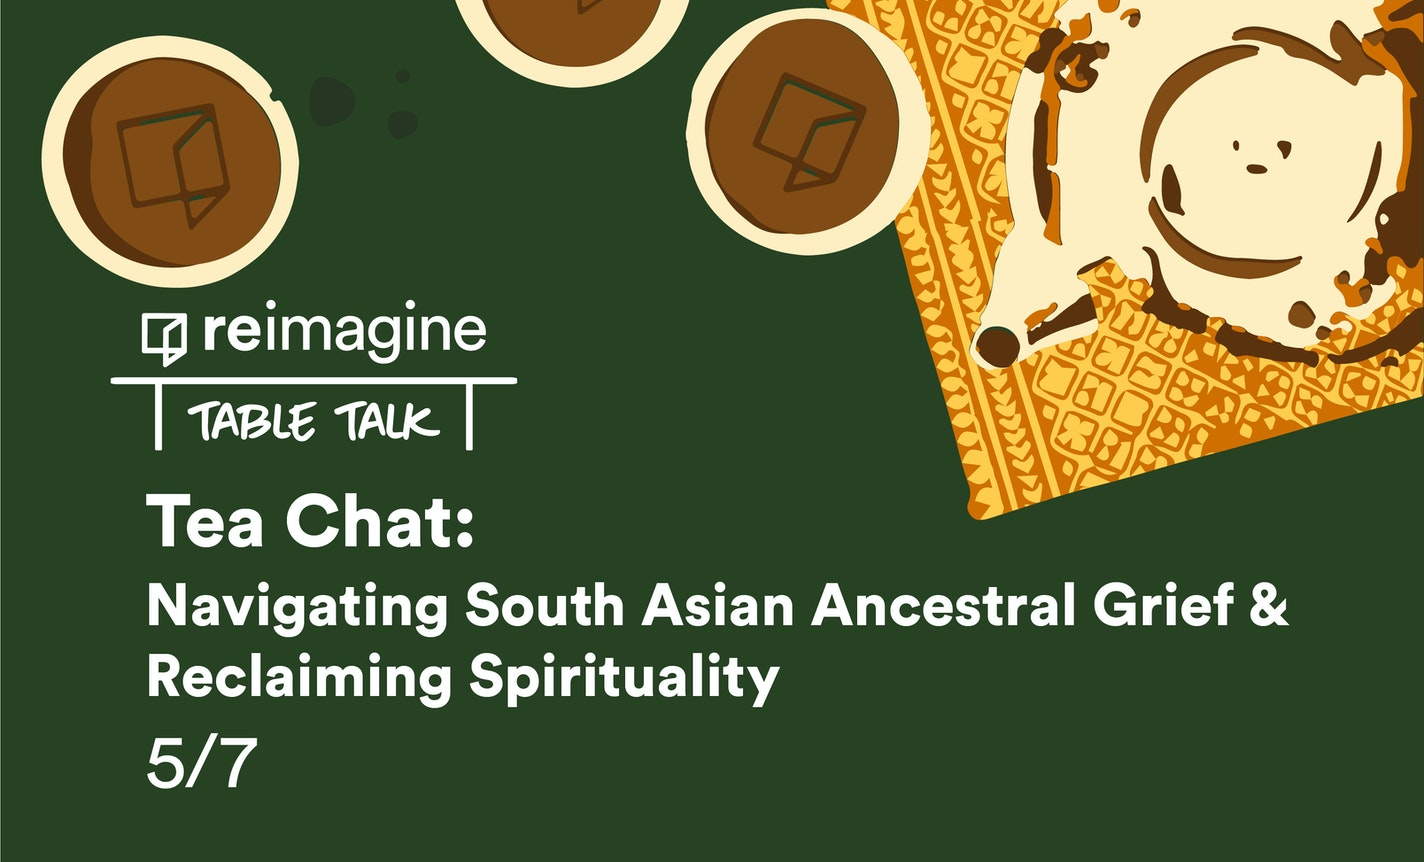 Tea Chat: Navigating South Asian Ancestral Grief